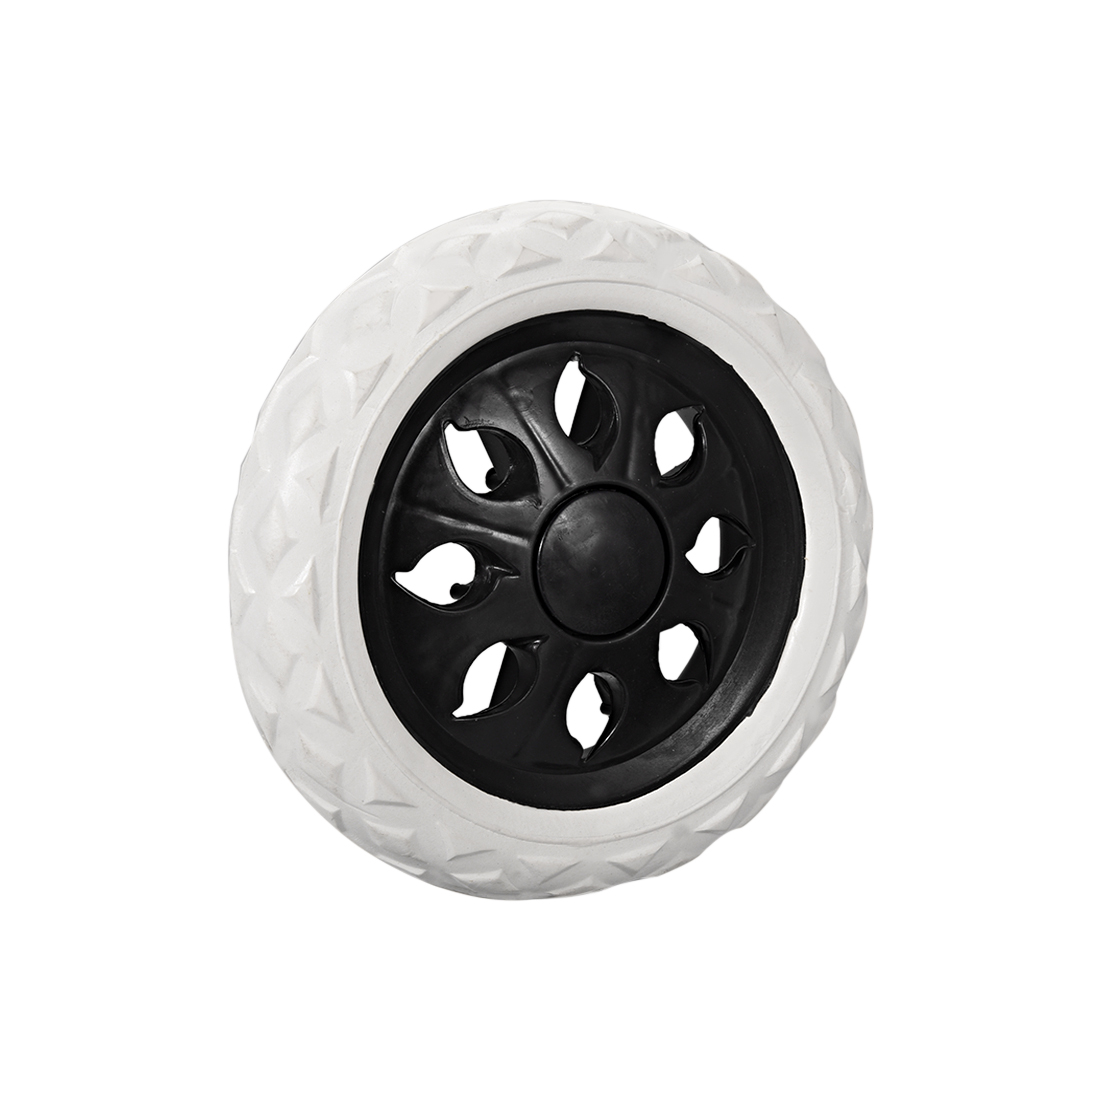 uxcell Shopping Cart Wheel Trolley Caster Replacement 6.5 inch Dia Rubber Foaming Black 10kg / 22lb per wheel Capacity